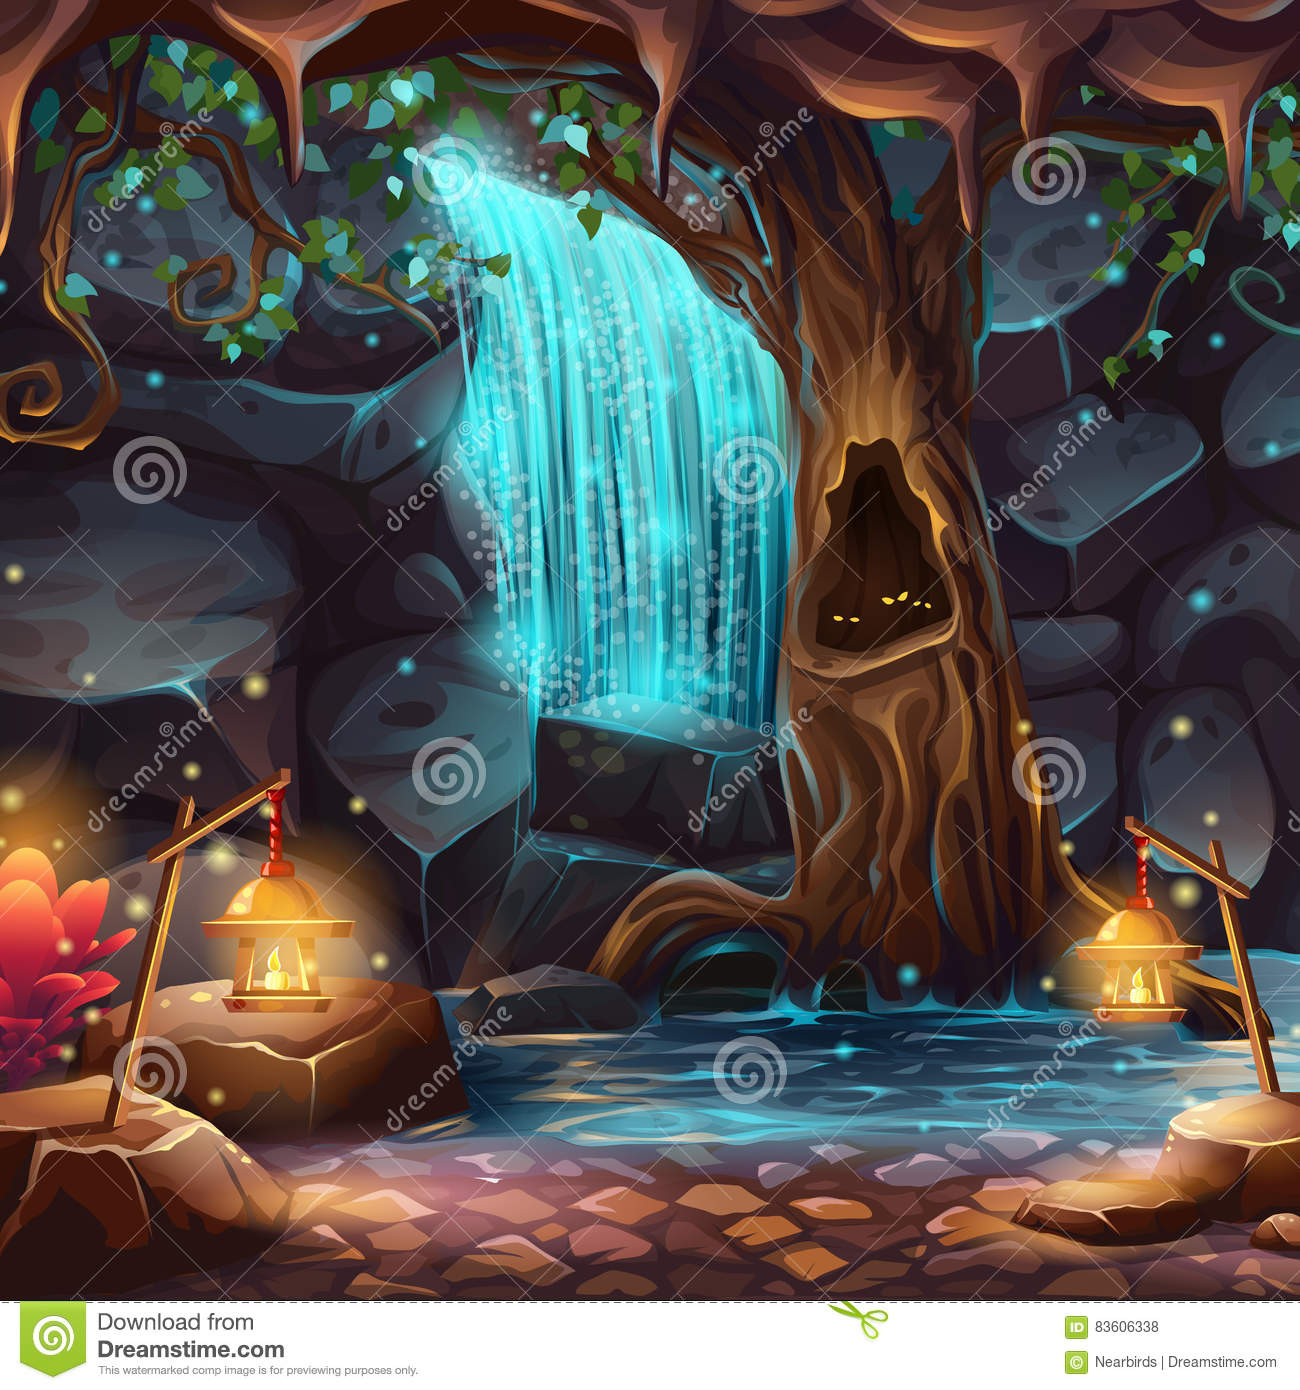 Vector cartoon illustration of a magical waterfall